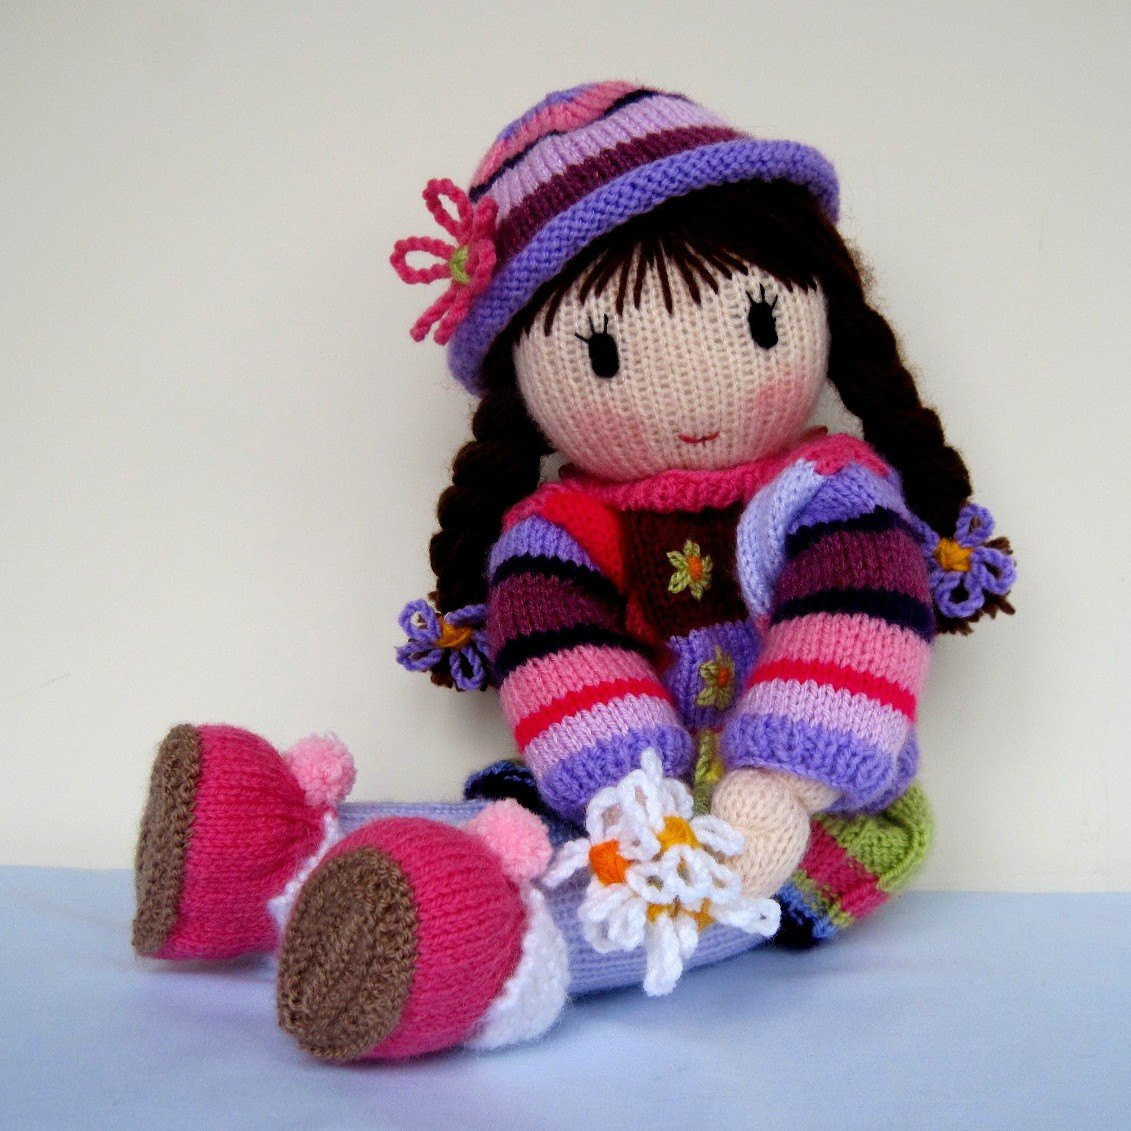 Posy Doll knitting pattern INSTANT DOWNLOAD by dollytime